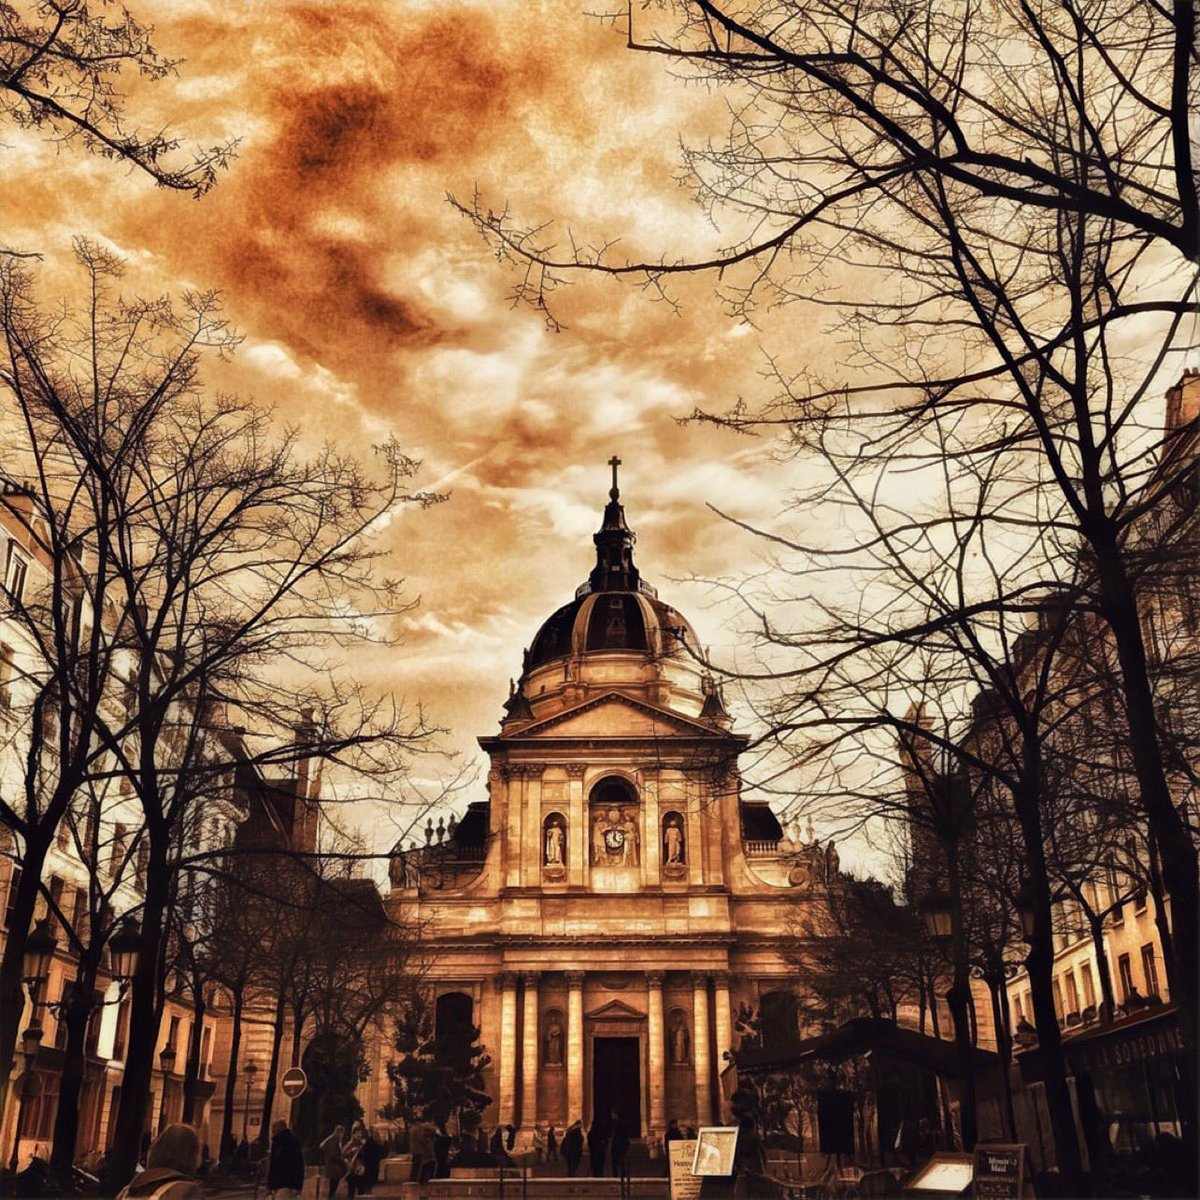 My ex-school   #thecity #paris #lasorbonne #autumn #beauty #autumncolors #facade #architecture #mypic #welcometomyworld<br>http://pic.twitter.com/CHAmdVKlKa